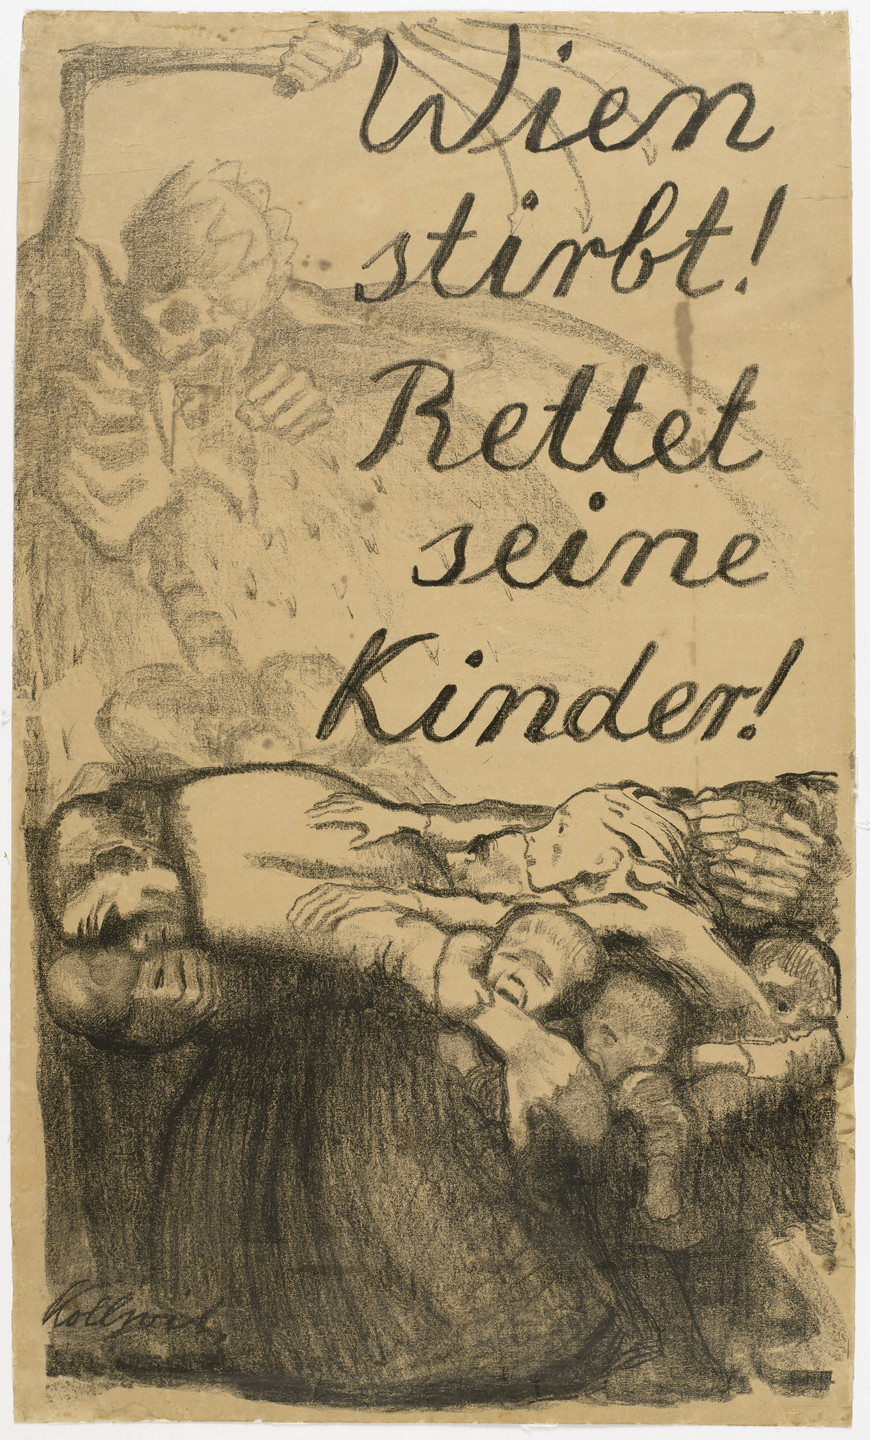 Käthe Kollwitz. Vienna Is Dying! Save Its Children! (Wien stirbt! Rettet seine Kinder!). 1920